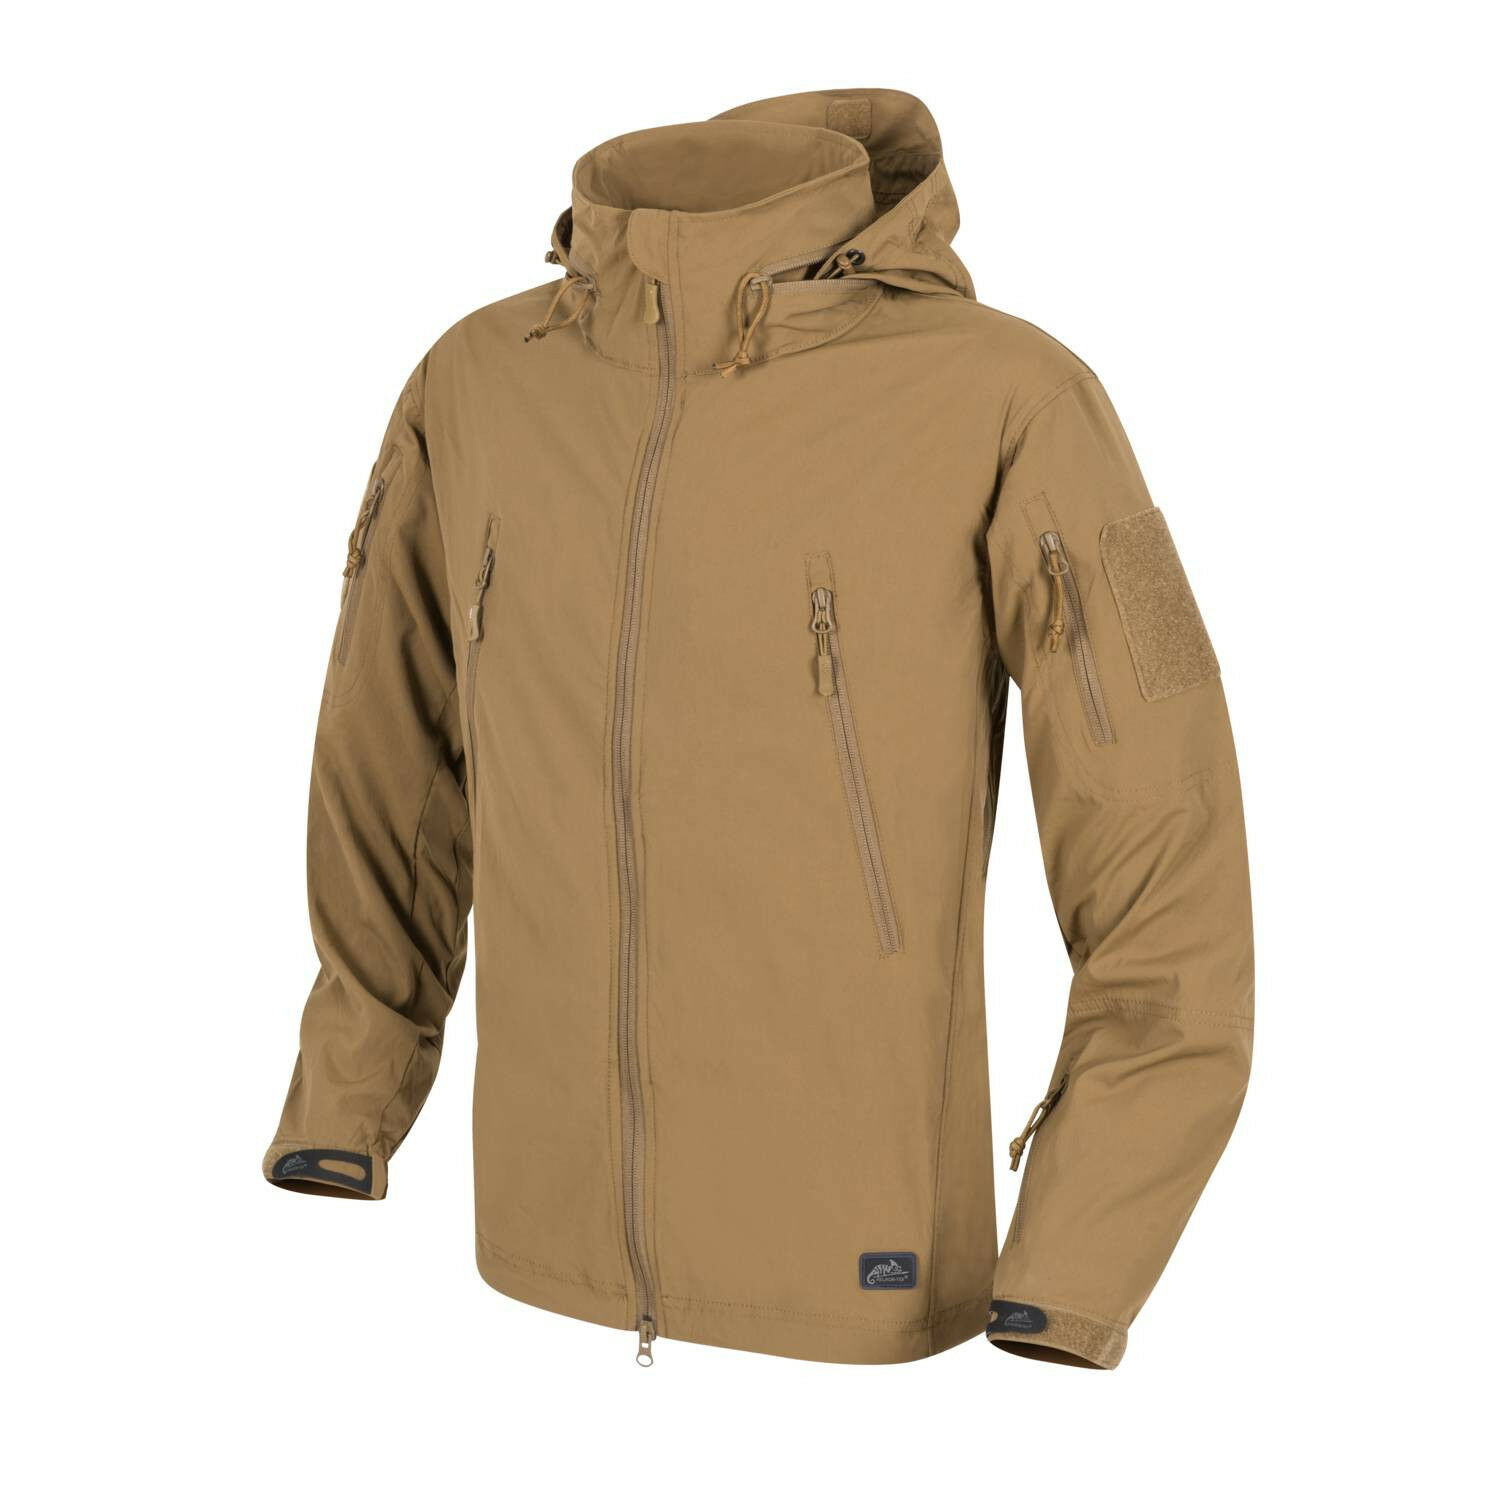 HELIKON tex Trooper Jacket stormstretch Al aire libre Softshell chaqueta coyote L large